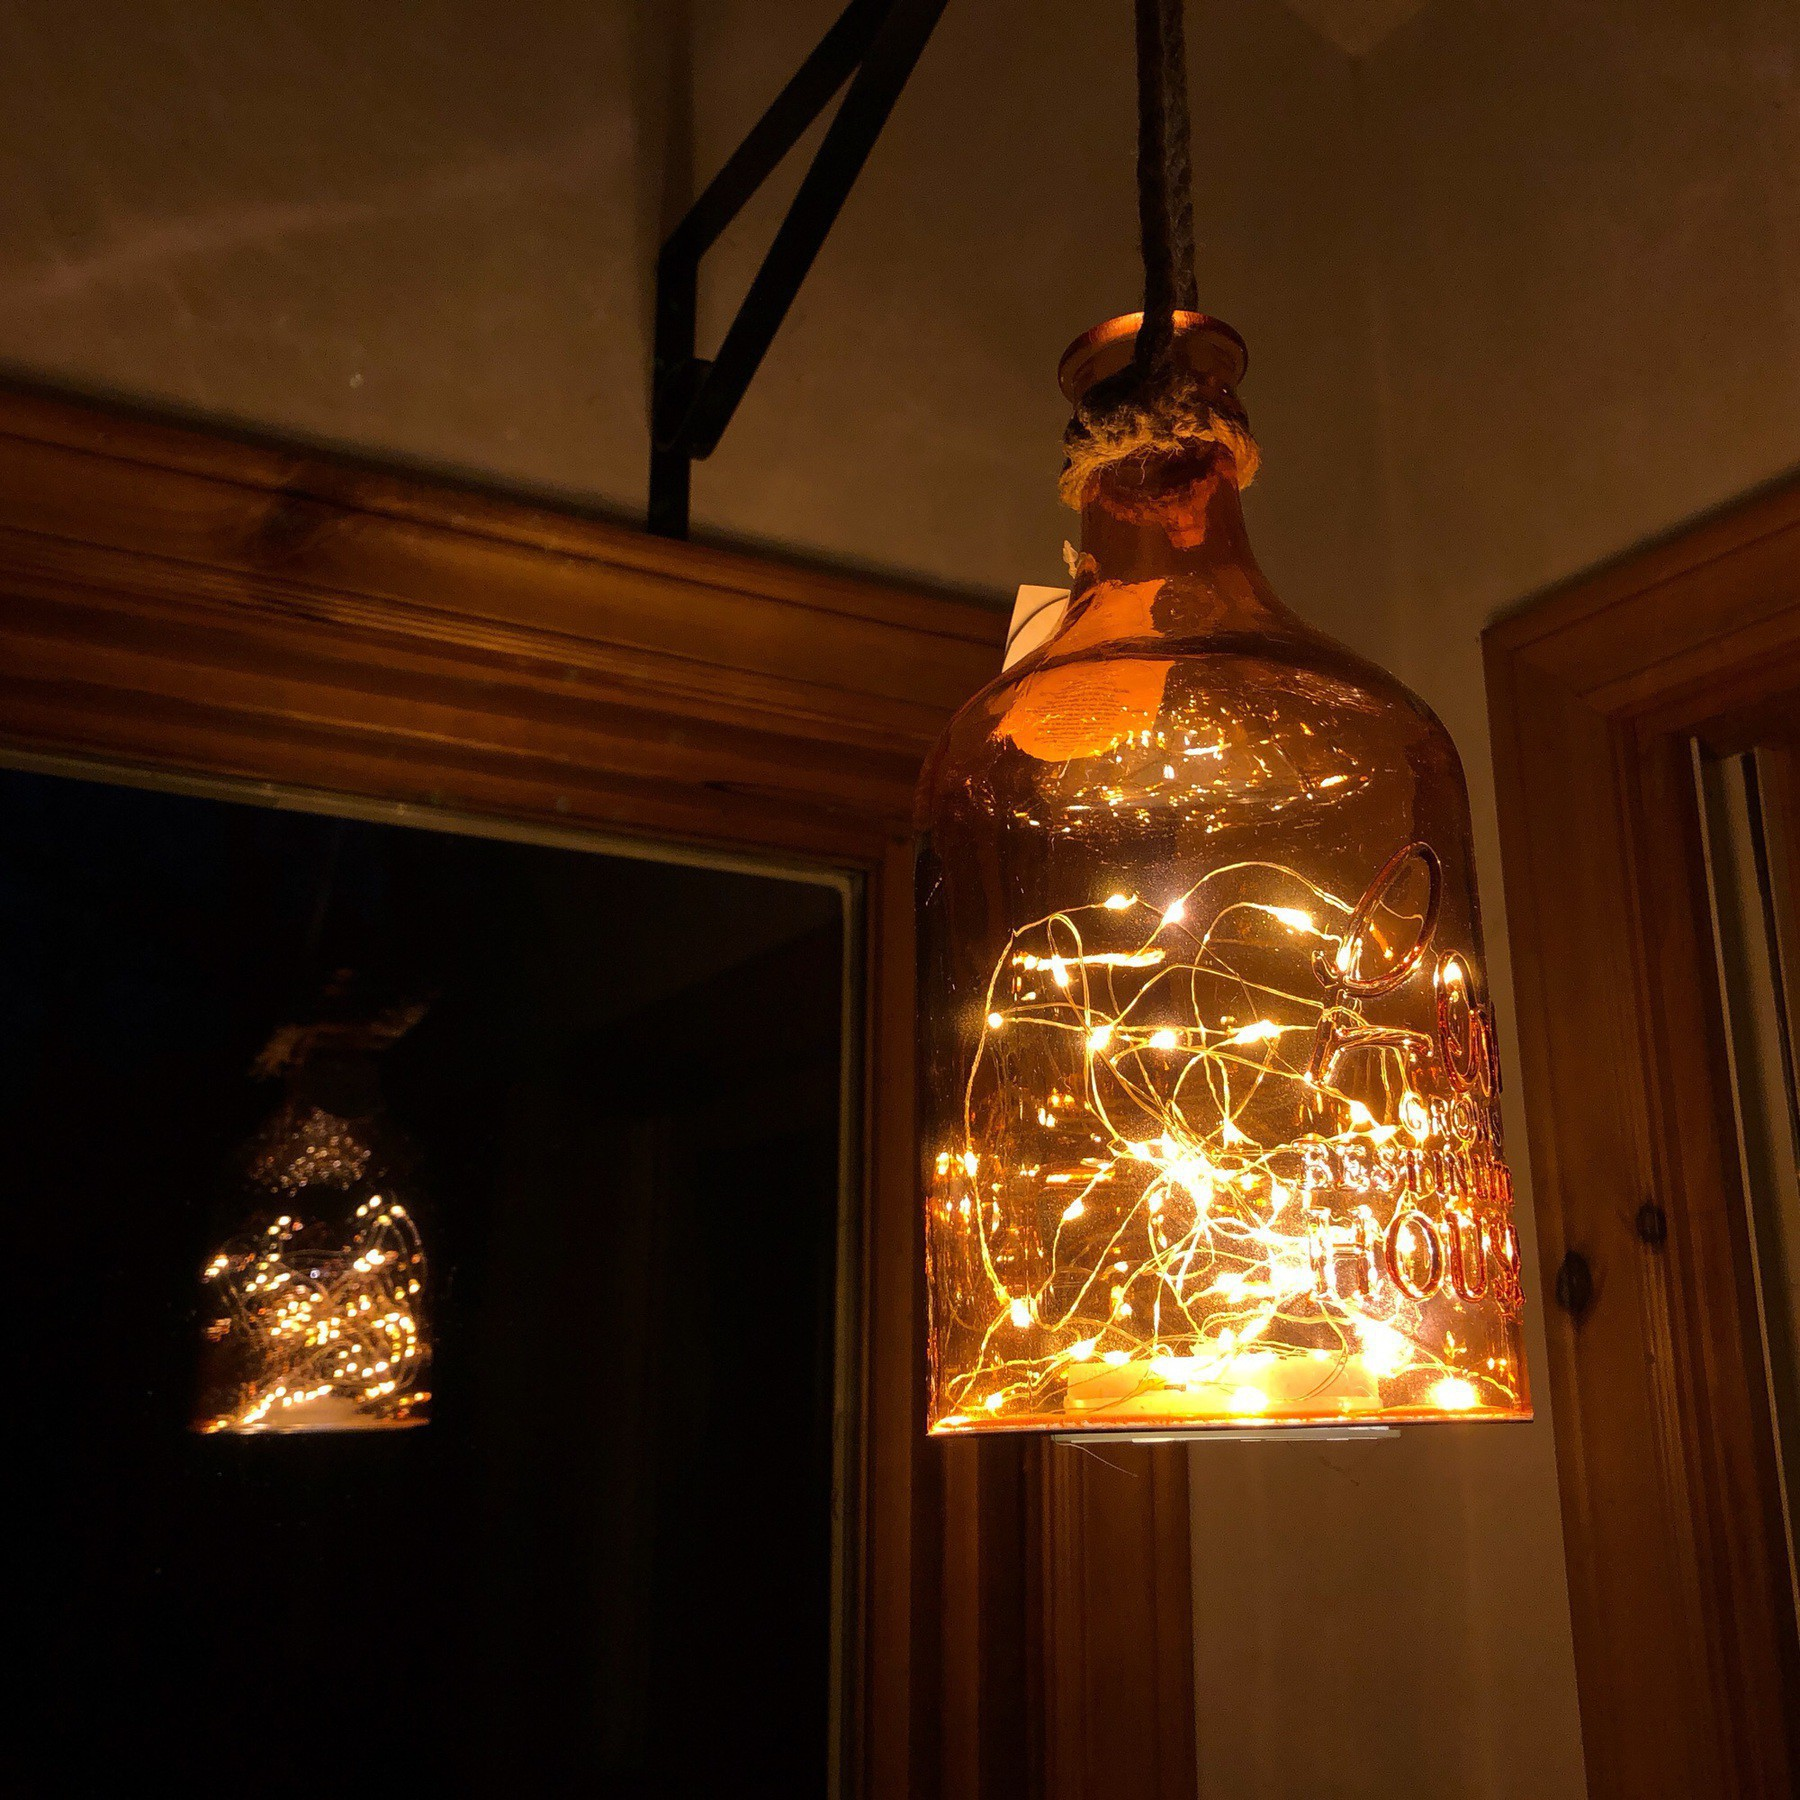 LED ights in bottle hanging from hook.